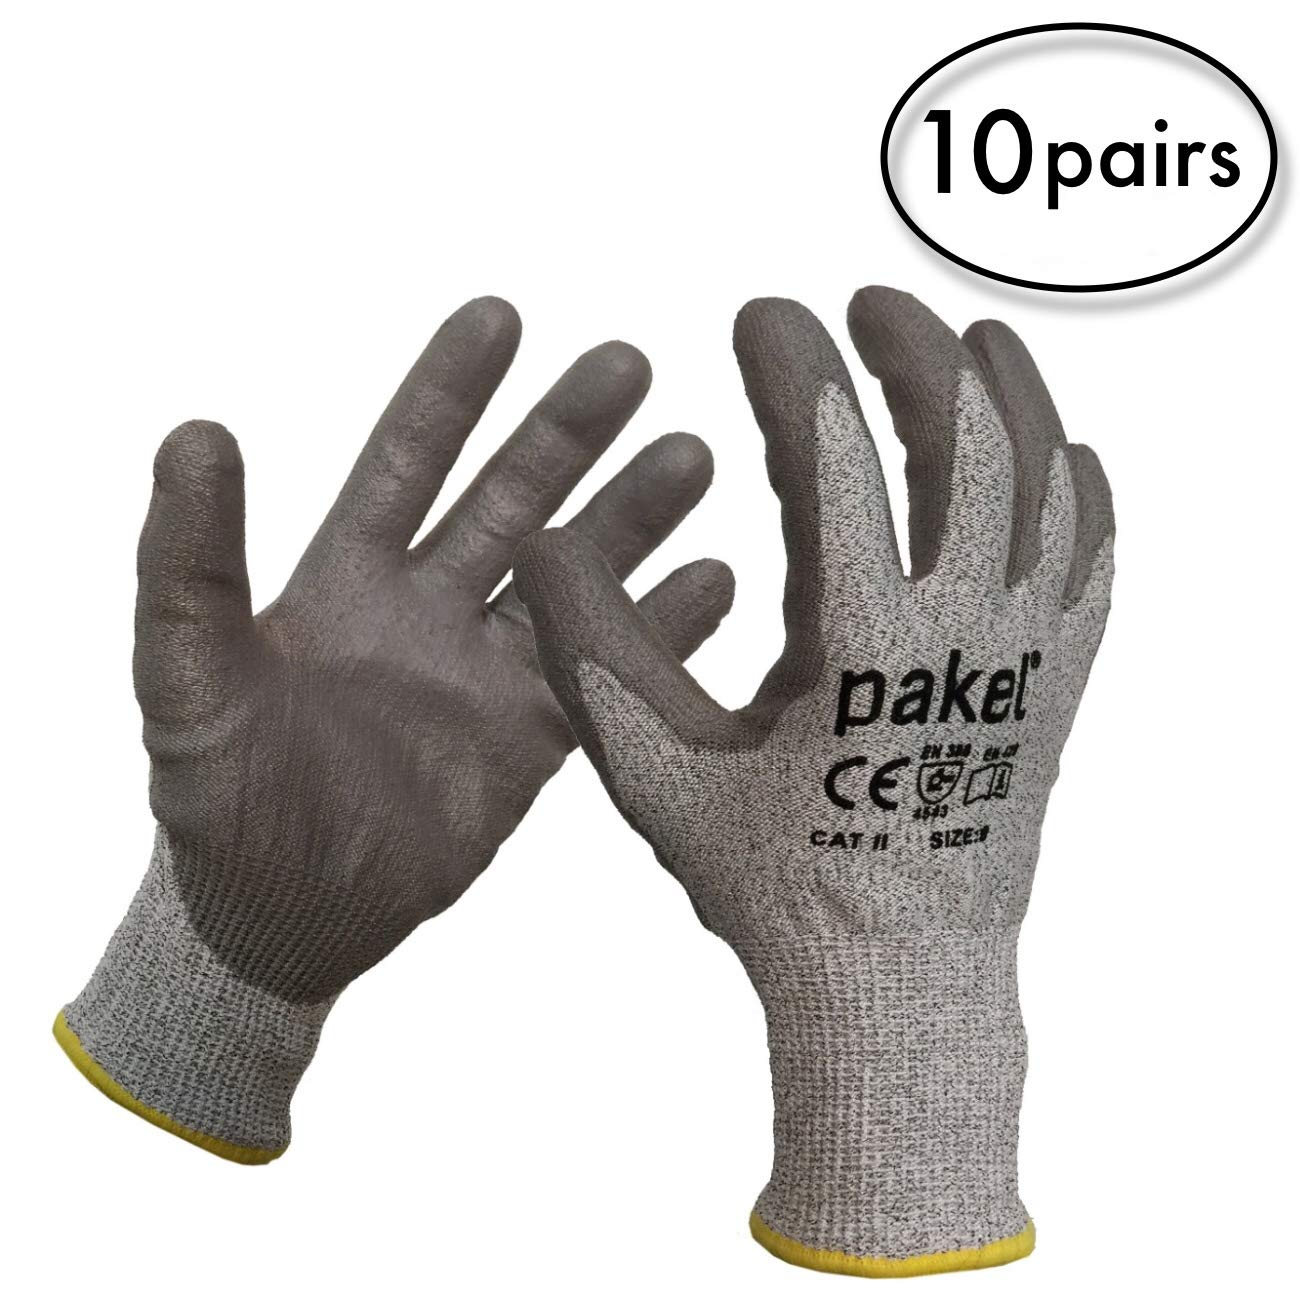 Pakel High Performance En388 CE Level 5 Cut Resistant Knit Wrist Gloves (Size 9 / Large / 10 Pairs) by Pakel (Image #2)